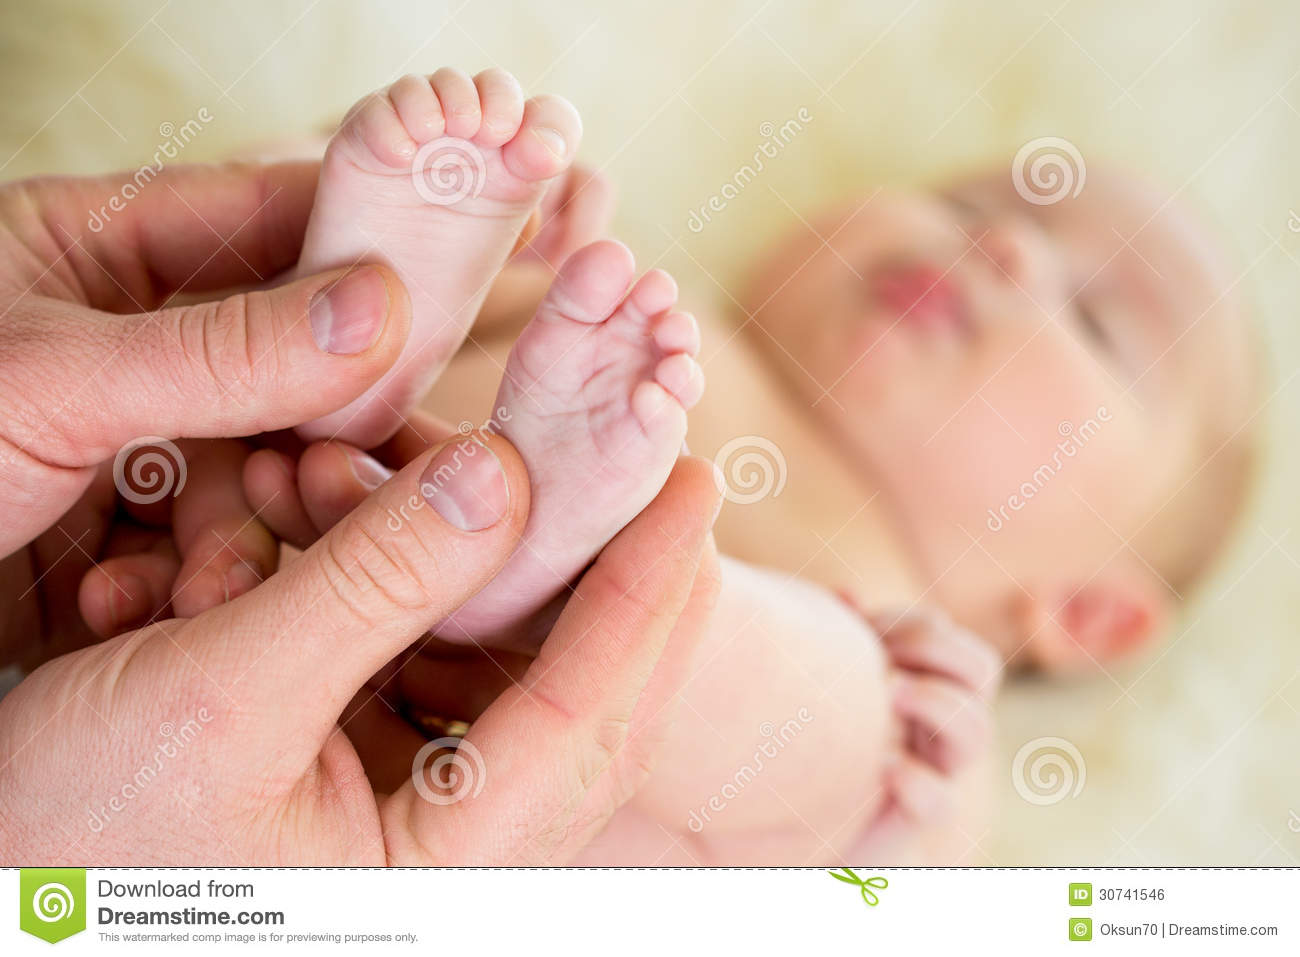 hands massaging small baby feet royalty free stock image image 30741546. Black Bedroom Furniture Sets. Home Design Ideas